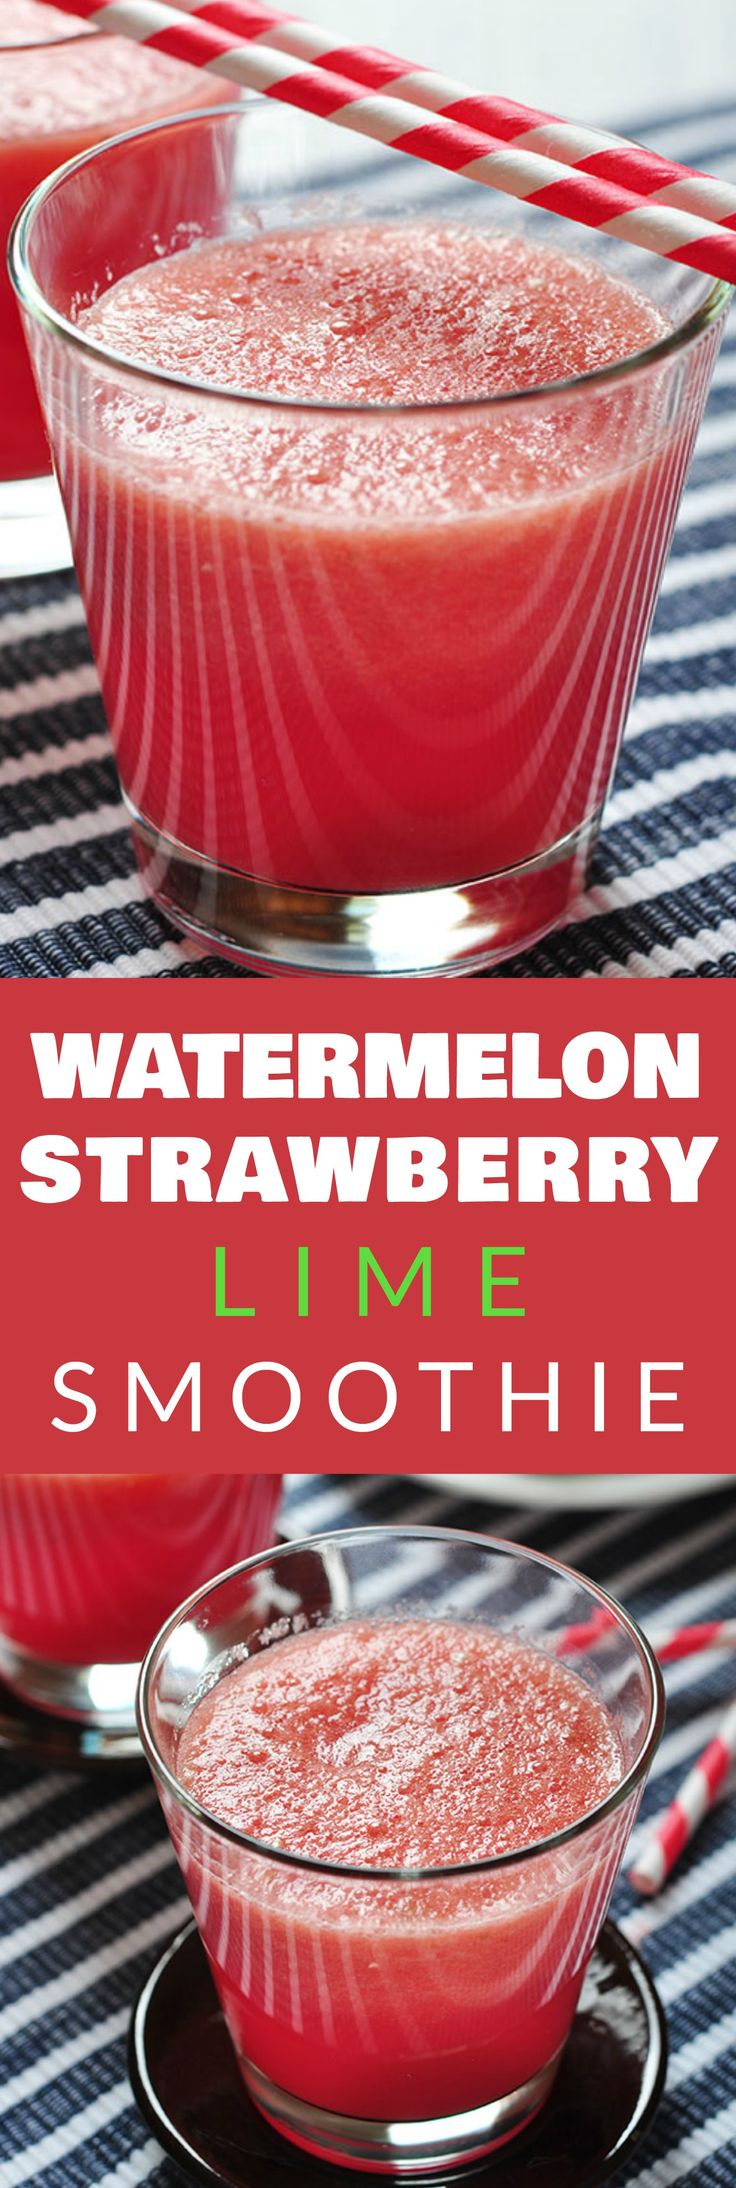 HEALTHY Watermelon Strawberry Lime Smoothie recipe that is perfect for the SUMMER!  All you have to do is throw all the ingredients in the blender for this easy recipe.  You can also use frozen fruit if watermelon is out of season of season.  This smoothi